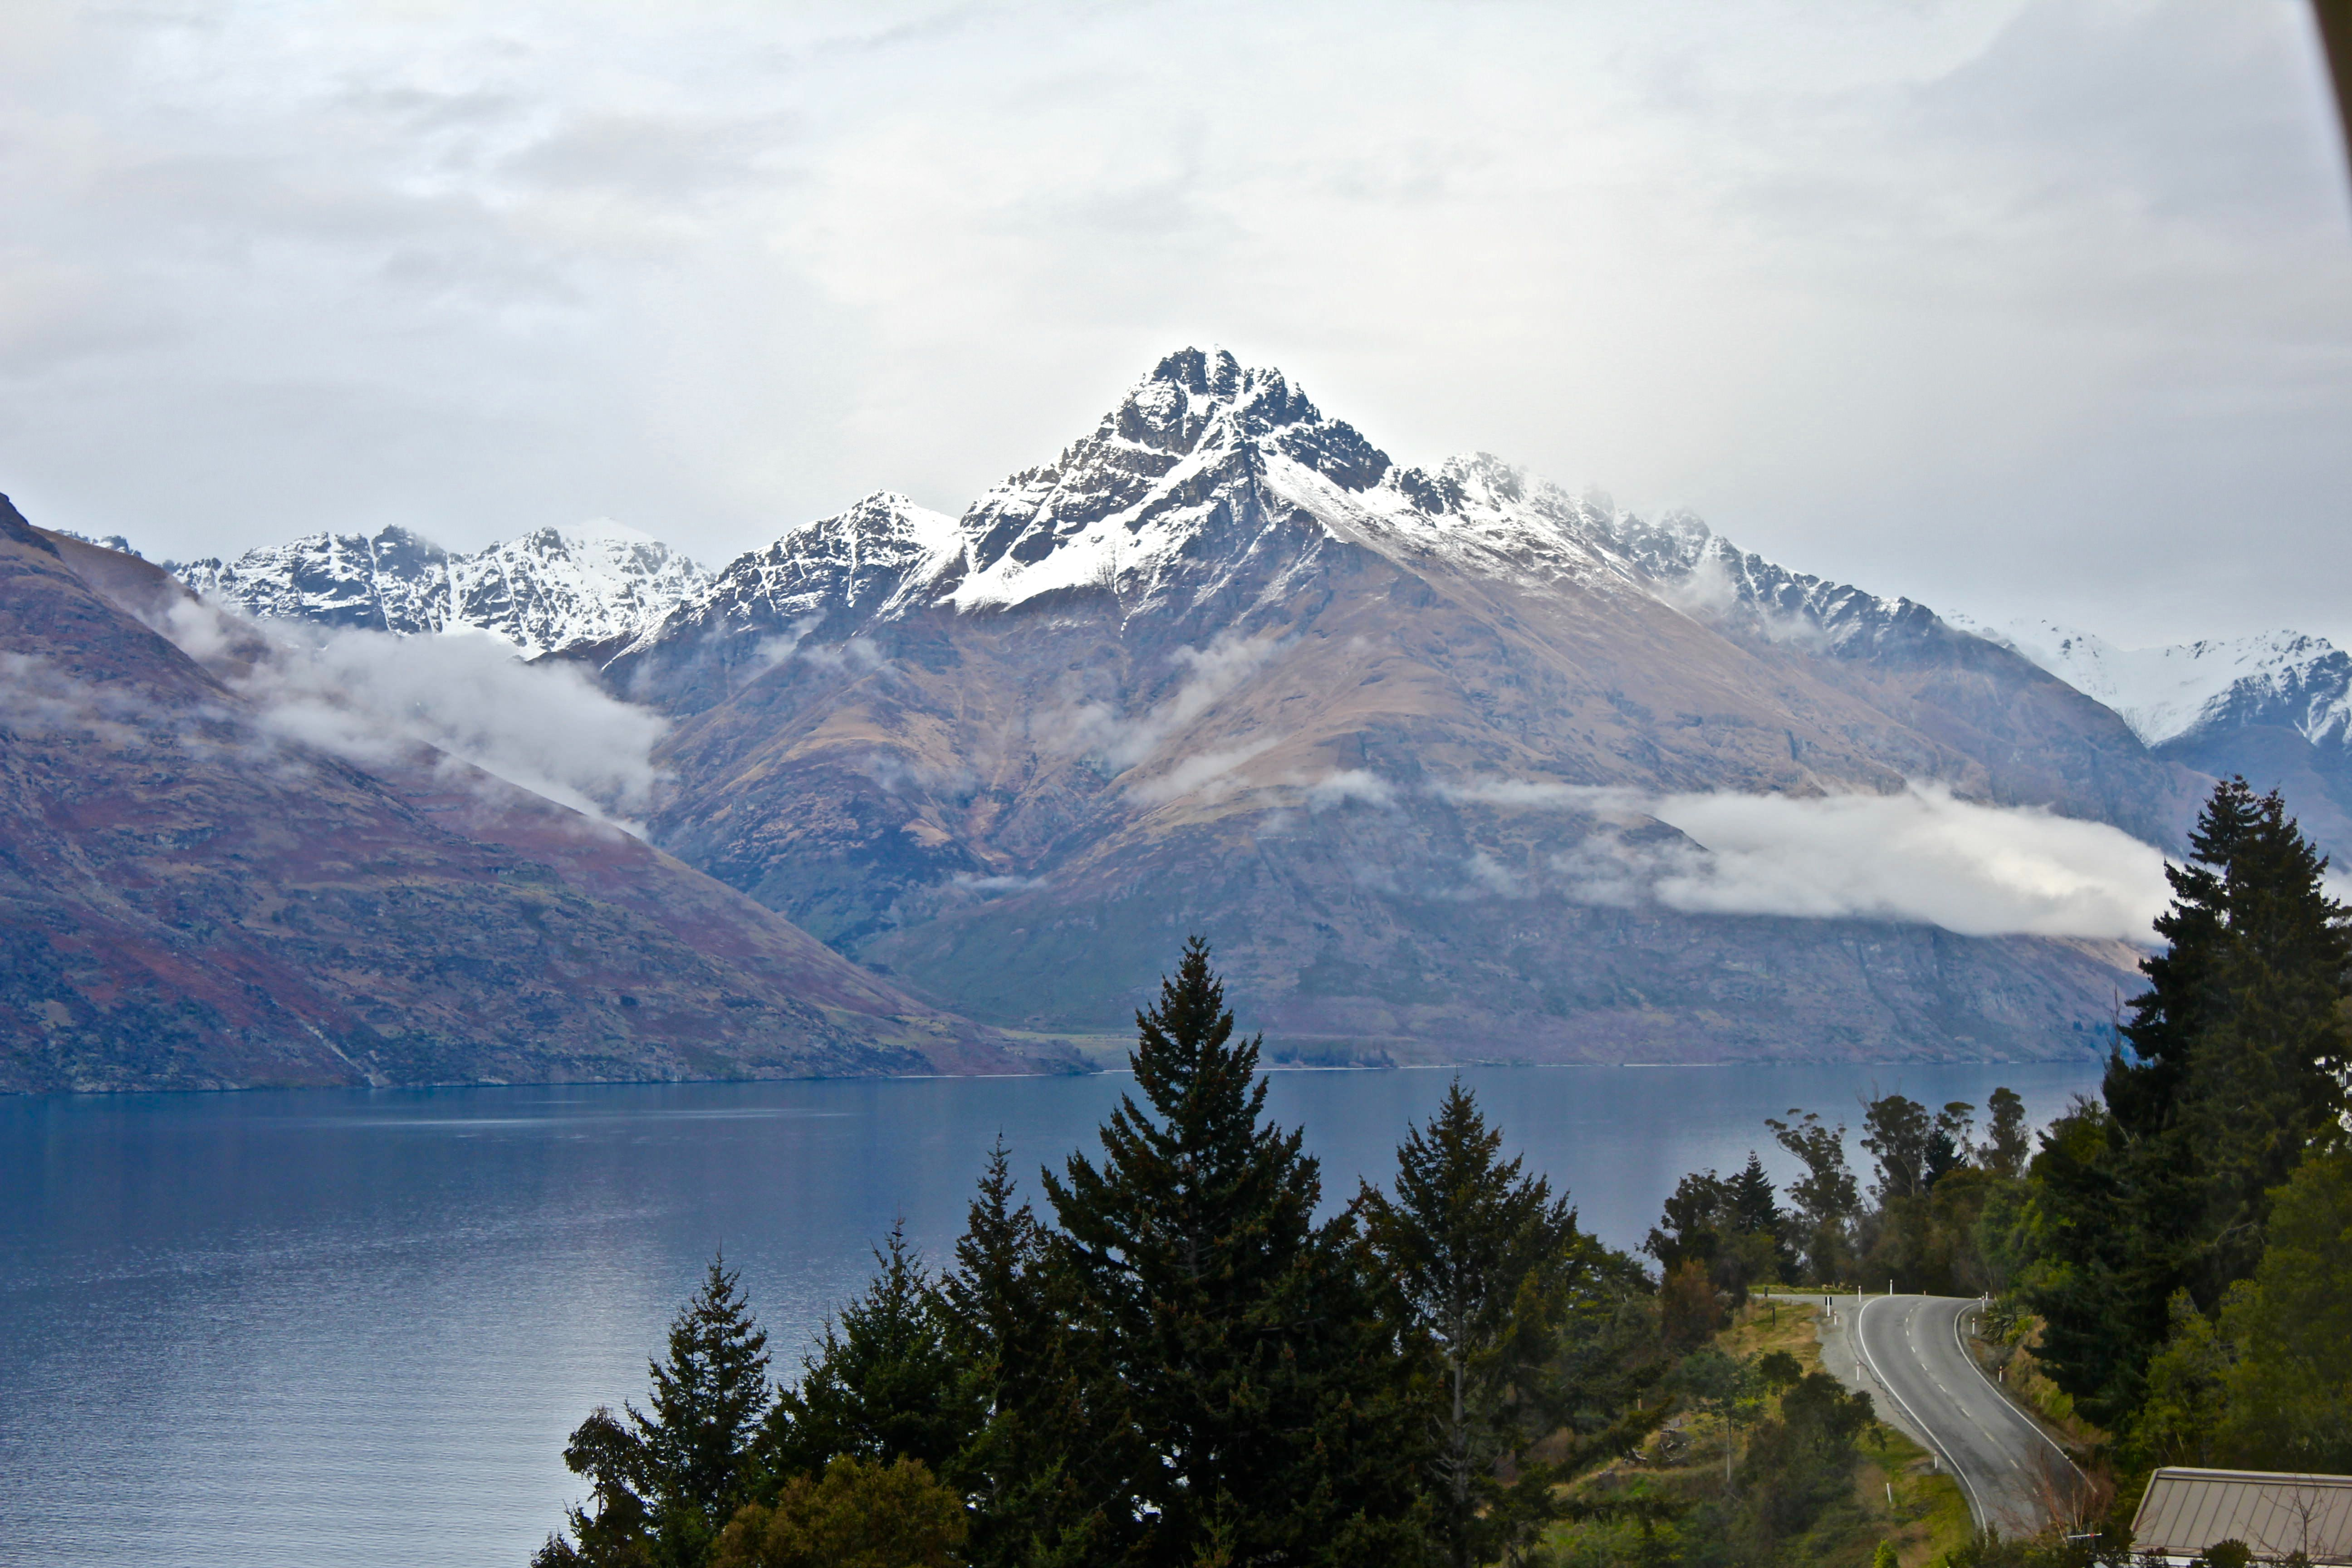 Road in Queenstown through a pine forest, overlooking snowy mountains covered in clouds and a lake